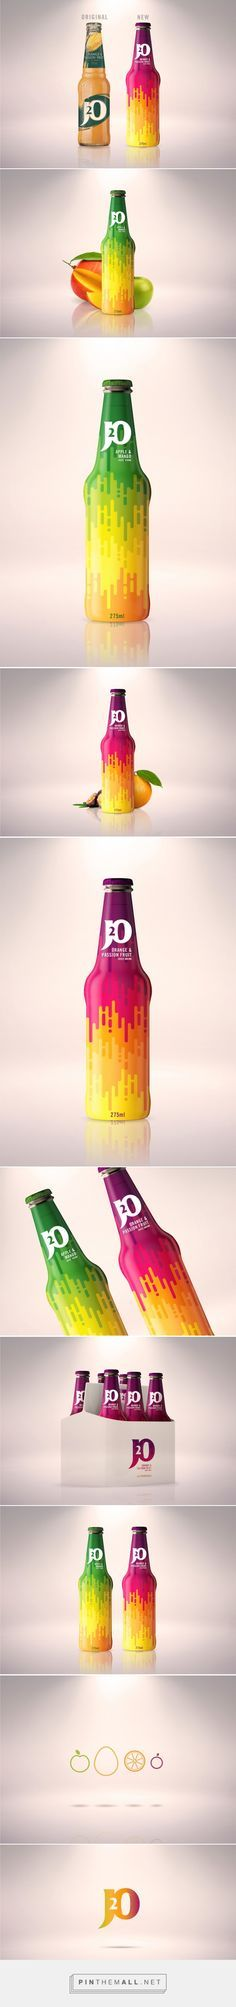 The J20 Project (Concept) on Packaging of the World - Creative Package Design Gallery